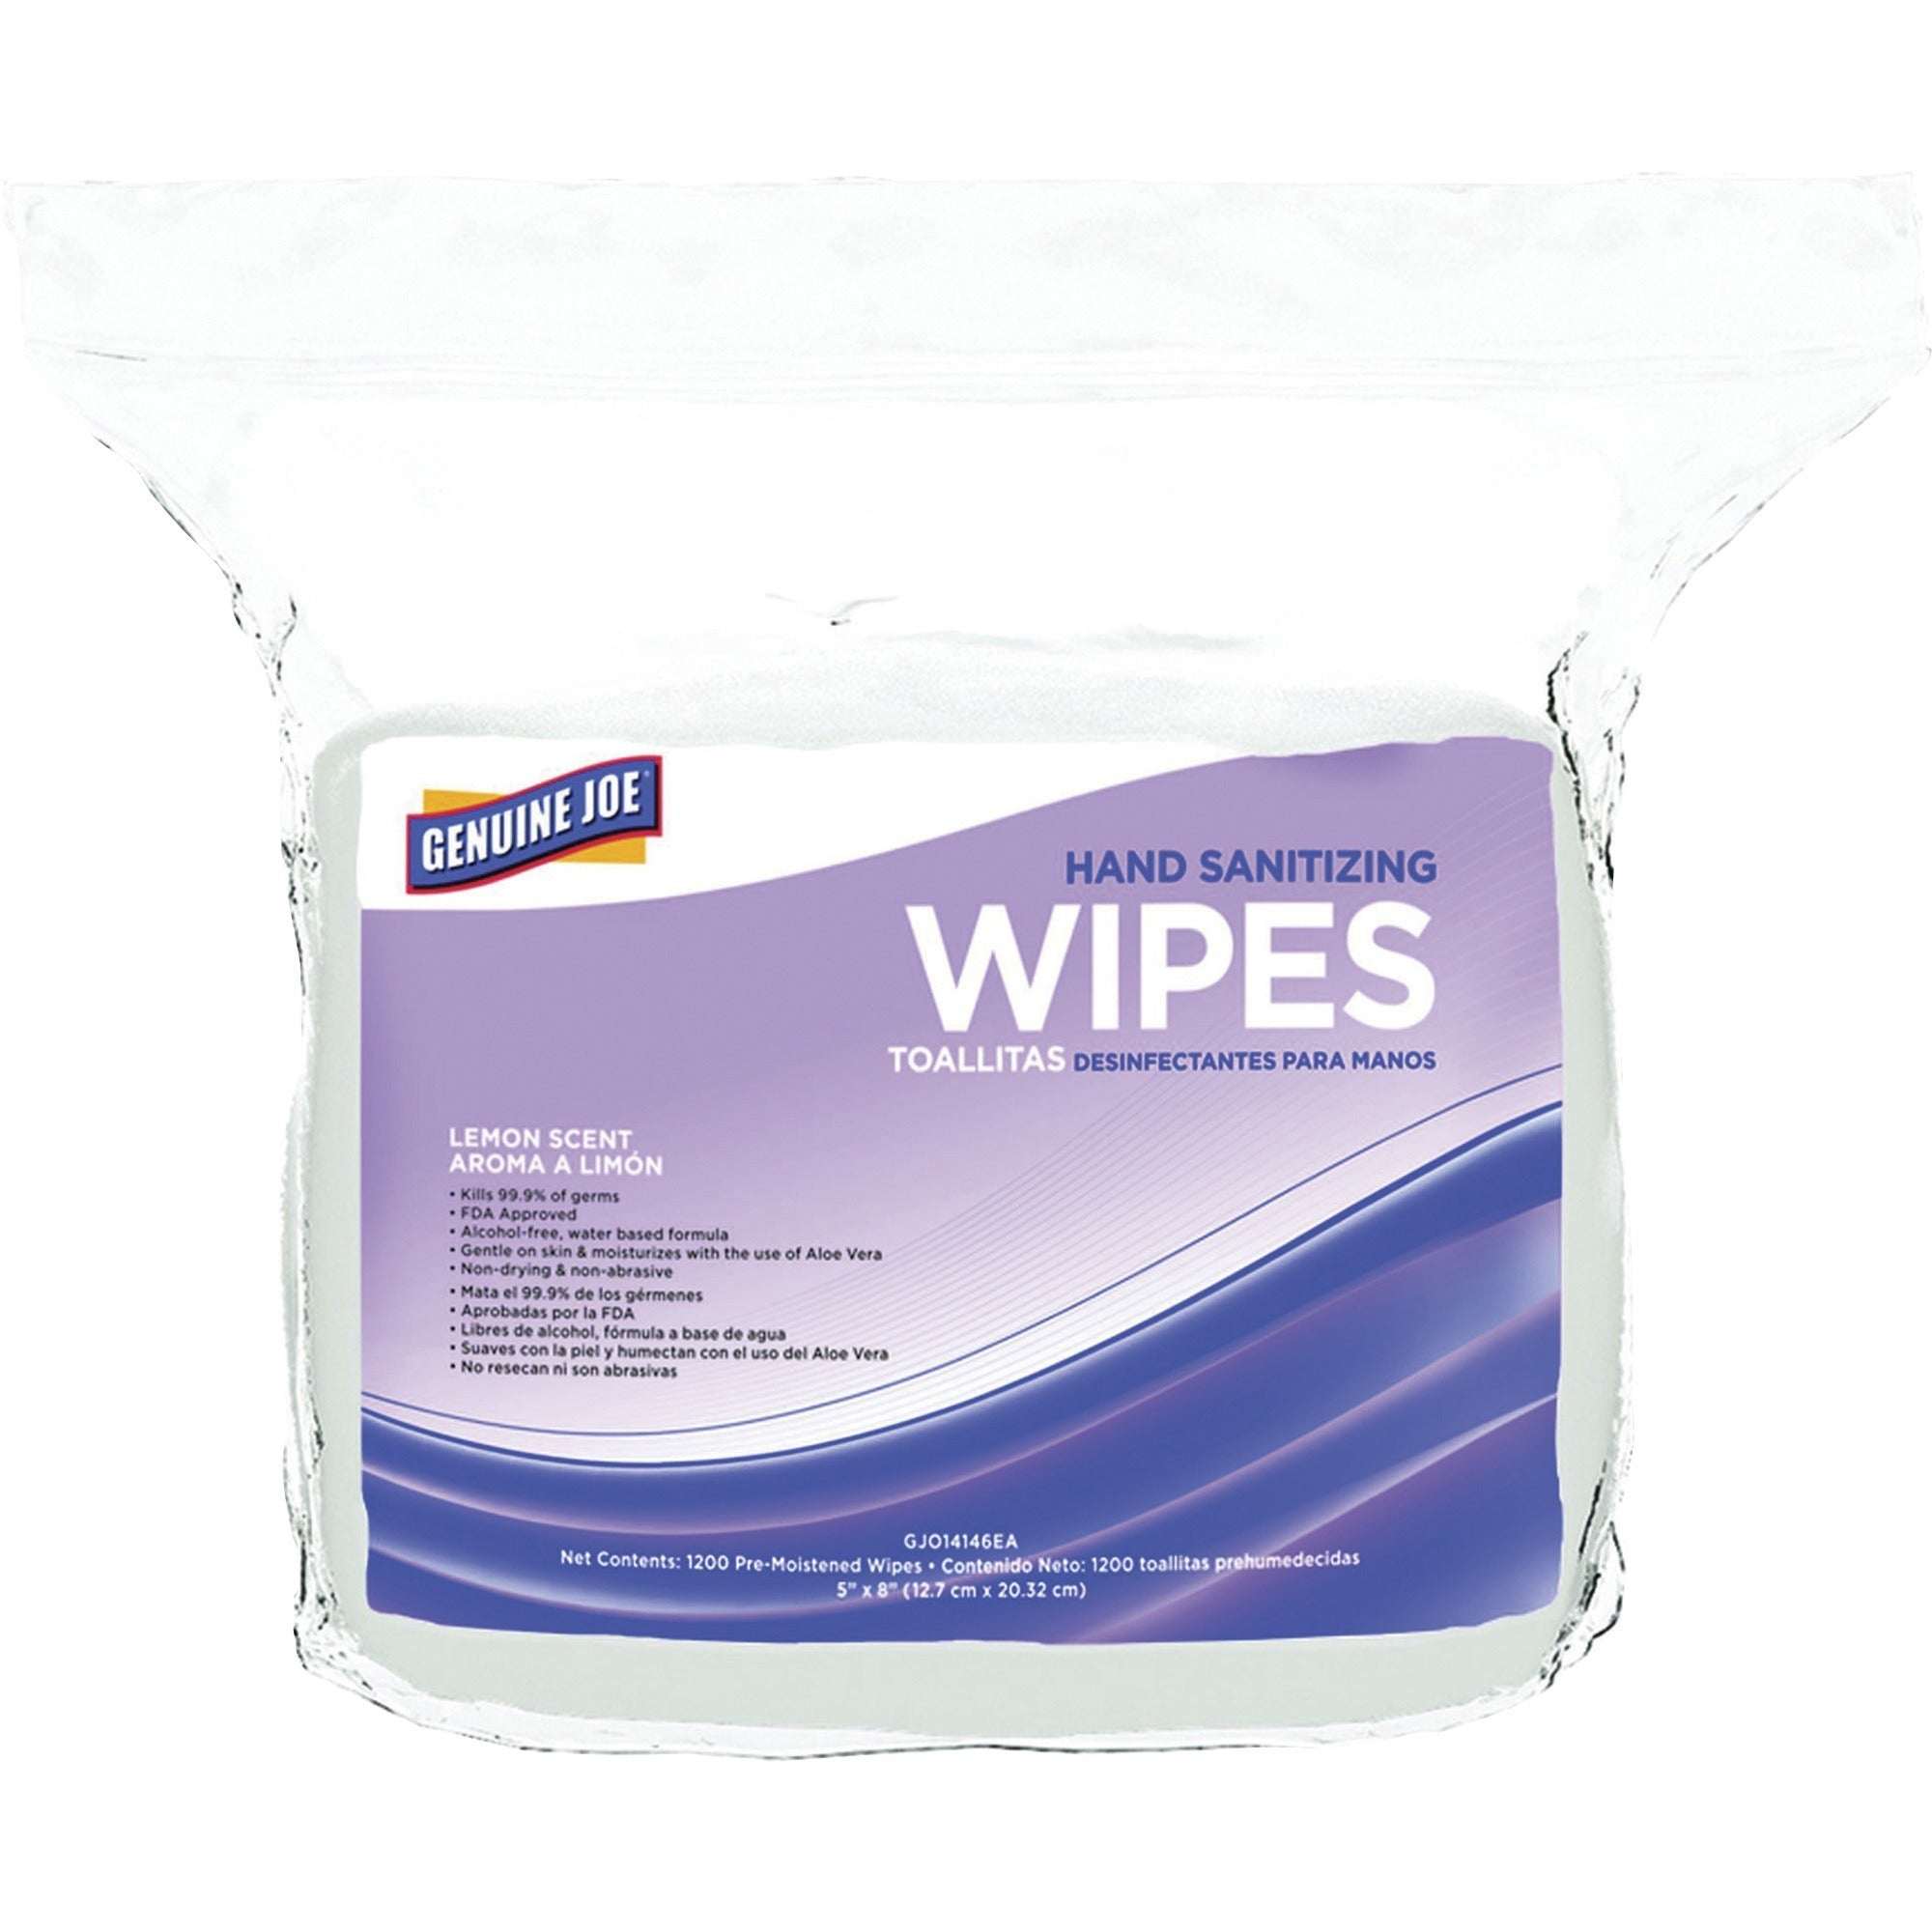 Genuine Joe Hand Sanitizing Wipes Refill 1200ct